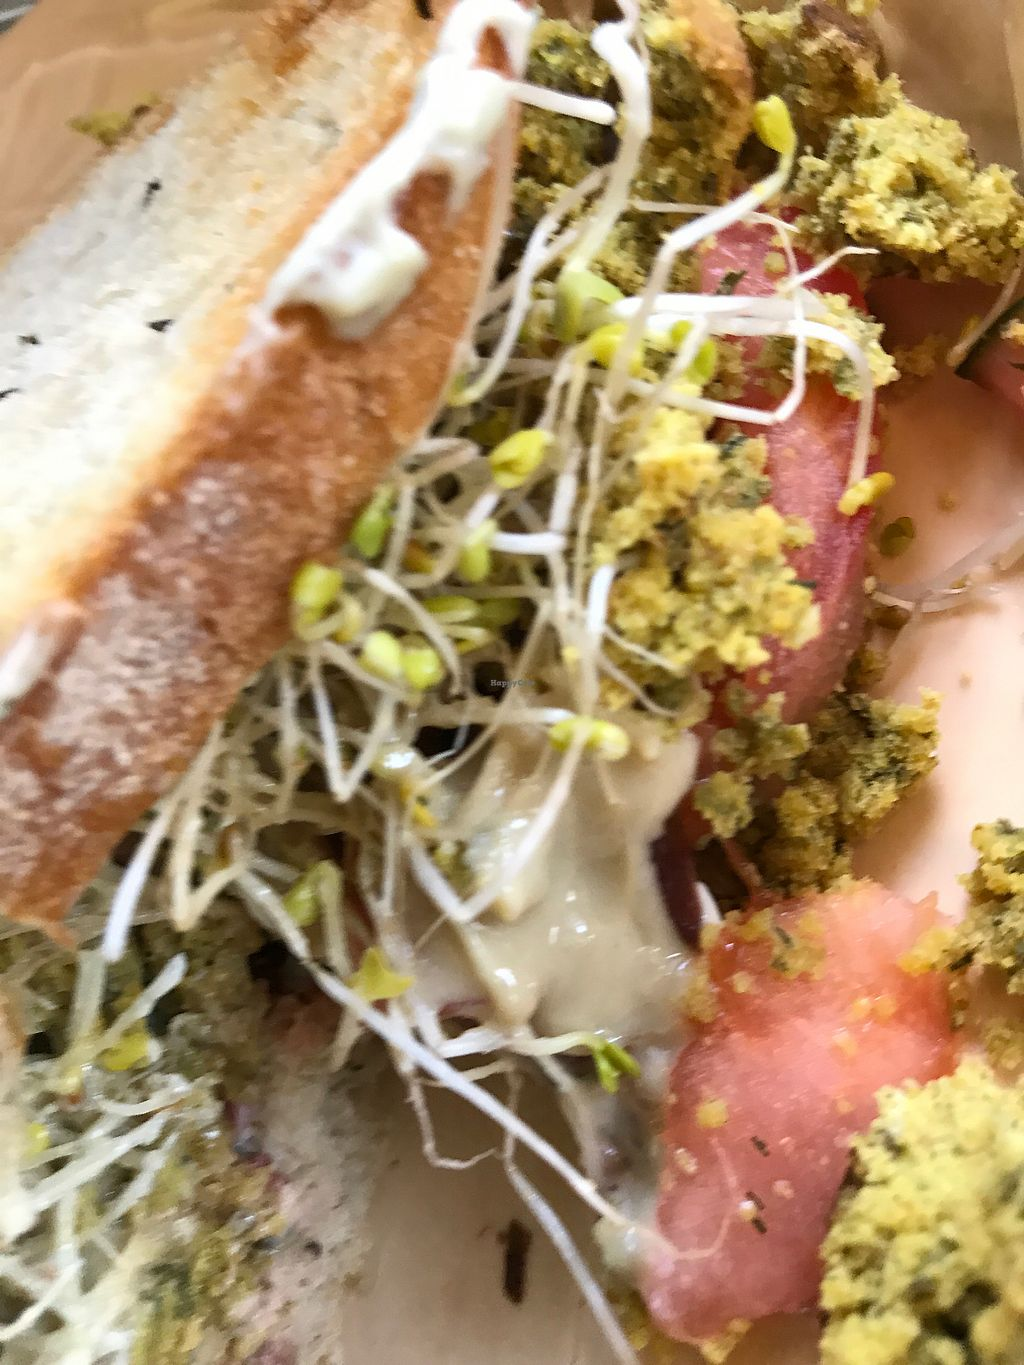 """Photo of Living Desert Ranch  by <a href=""""/members/profile/DeannaLynn837"""">DeannaLynn837</a> <br/>Falafel sprouted veggie gluten free sandwich  <br/> October 9, 2017  - <a href='/contact/abuse/image/100444/313685'>Report</a>"""